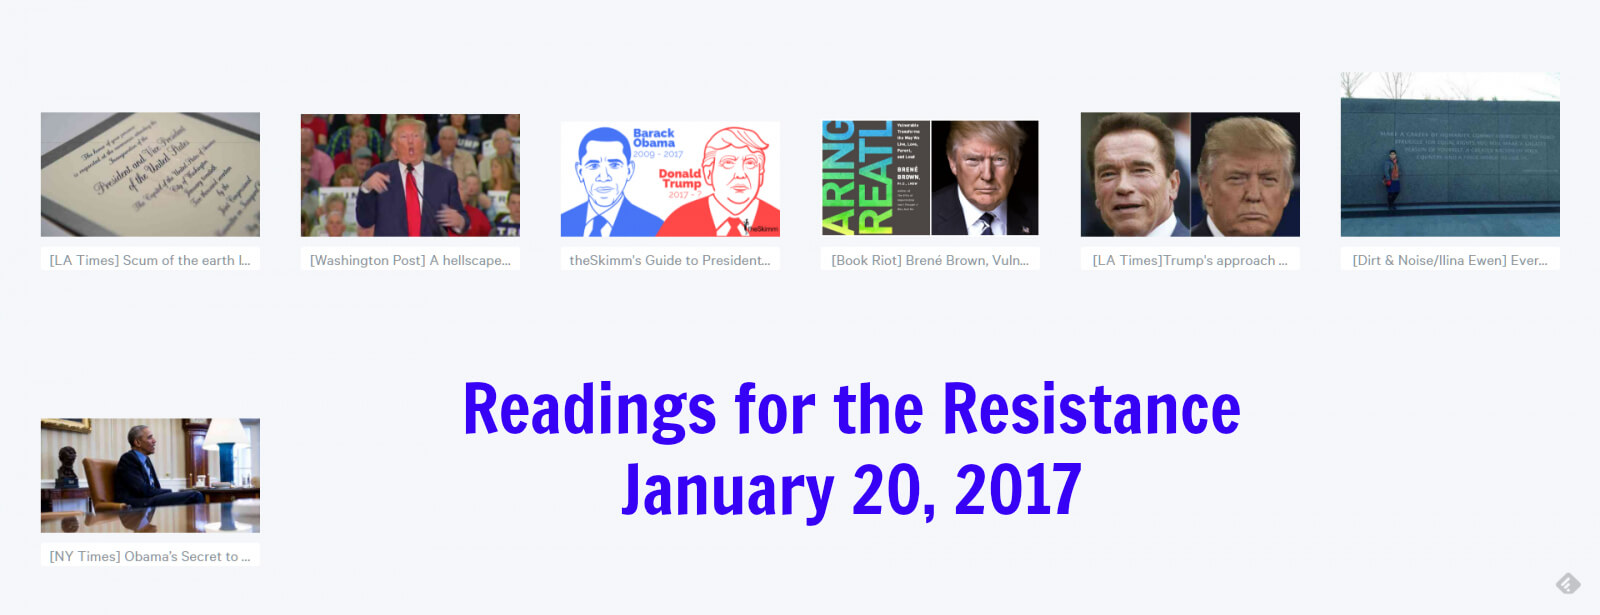 reading for the resistance: links